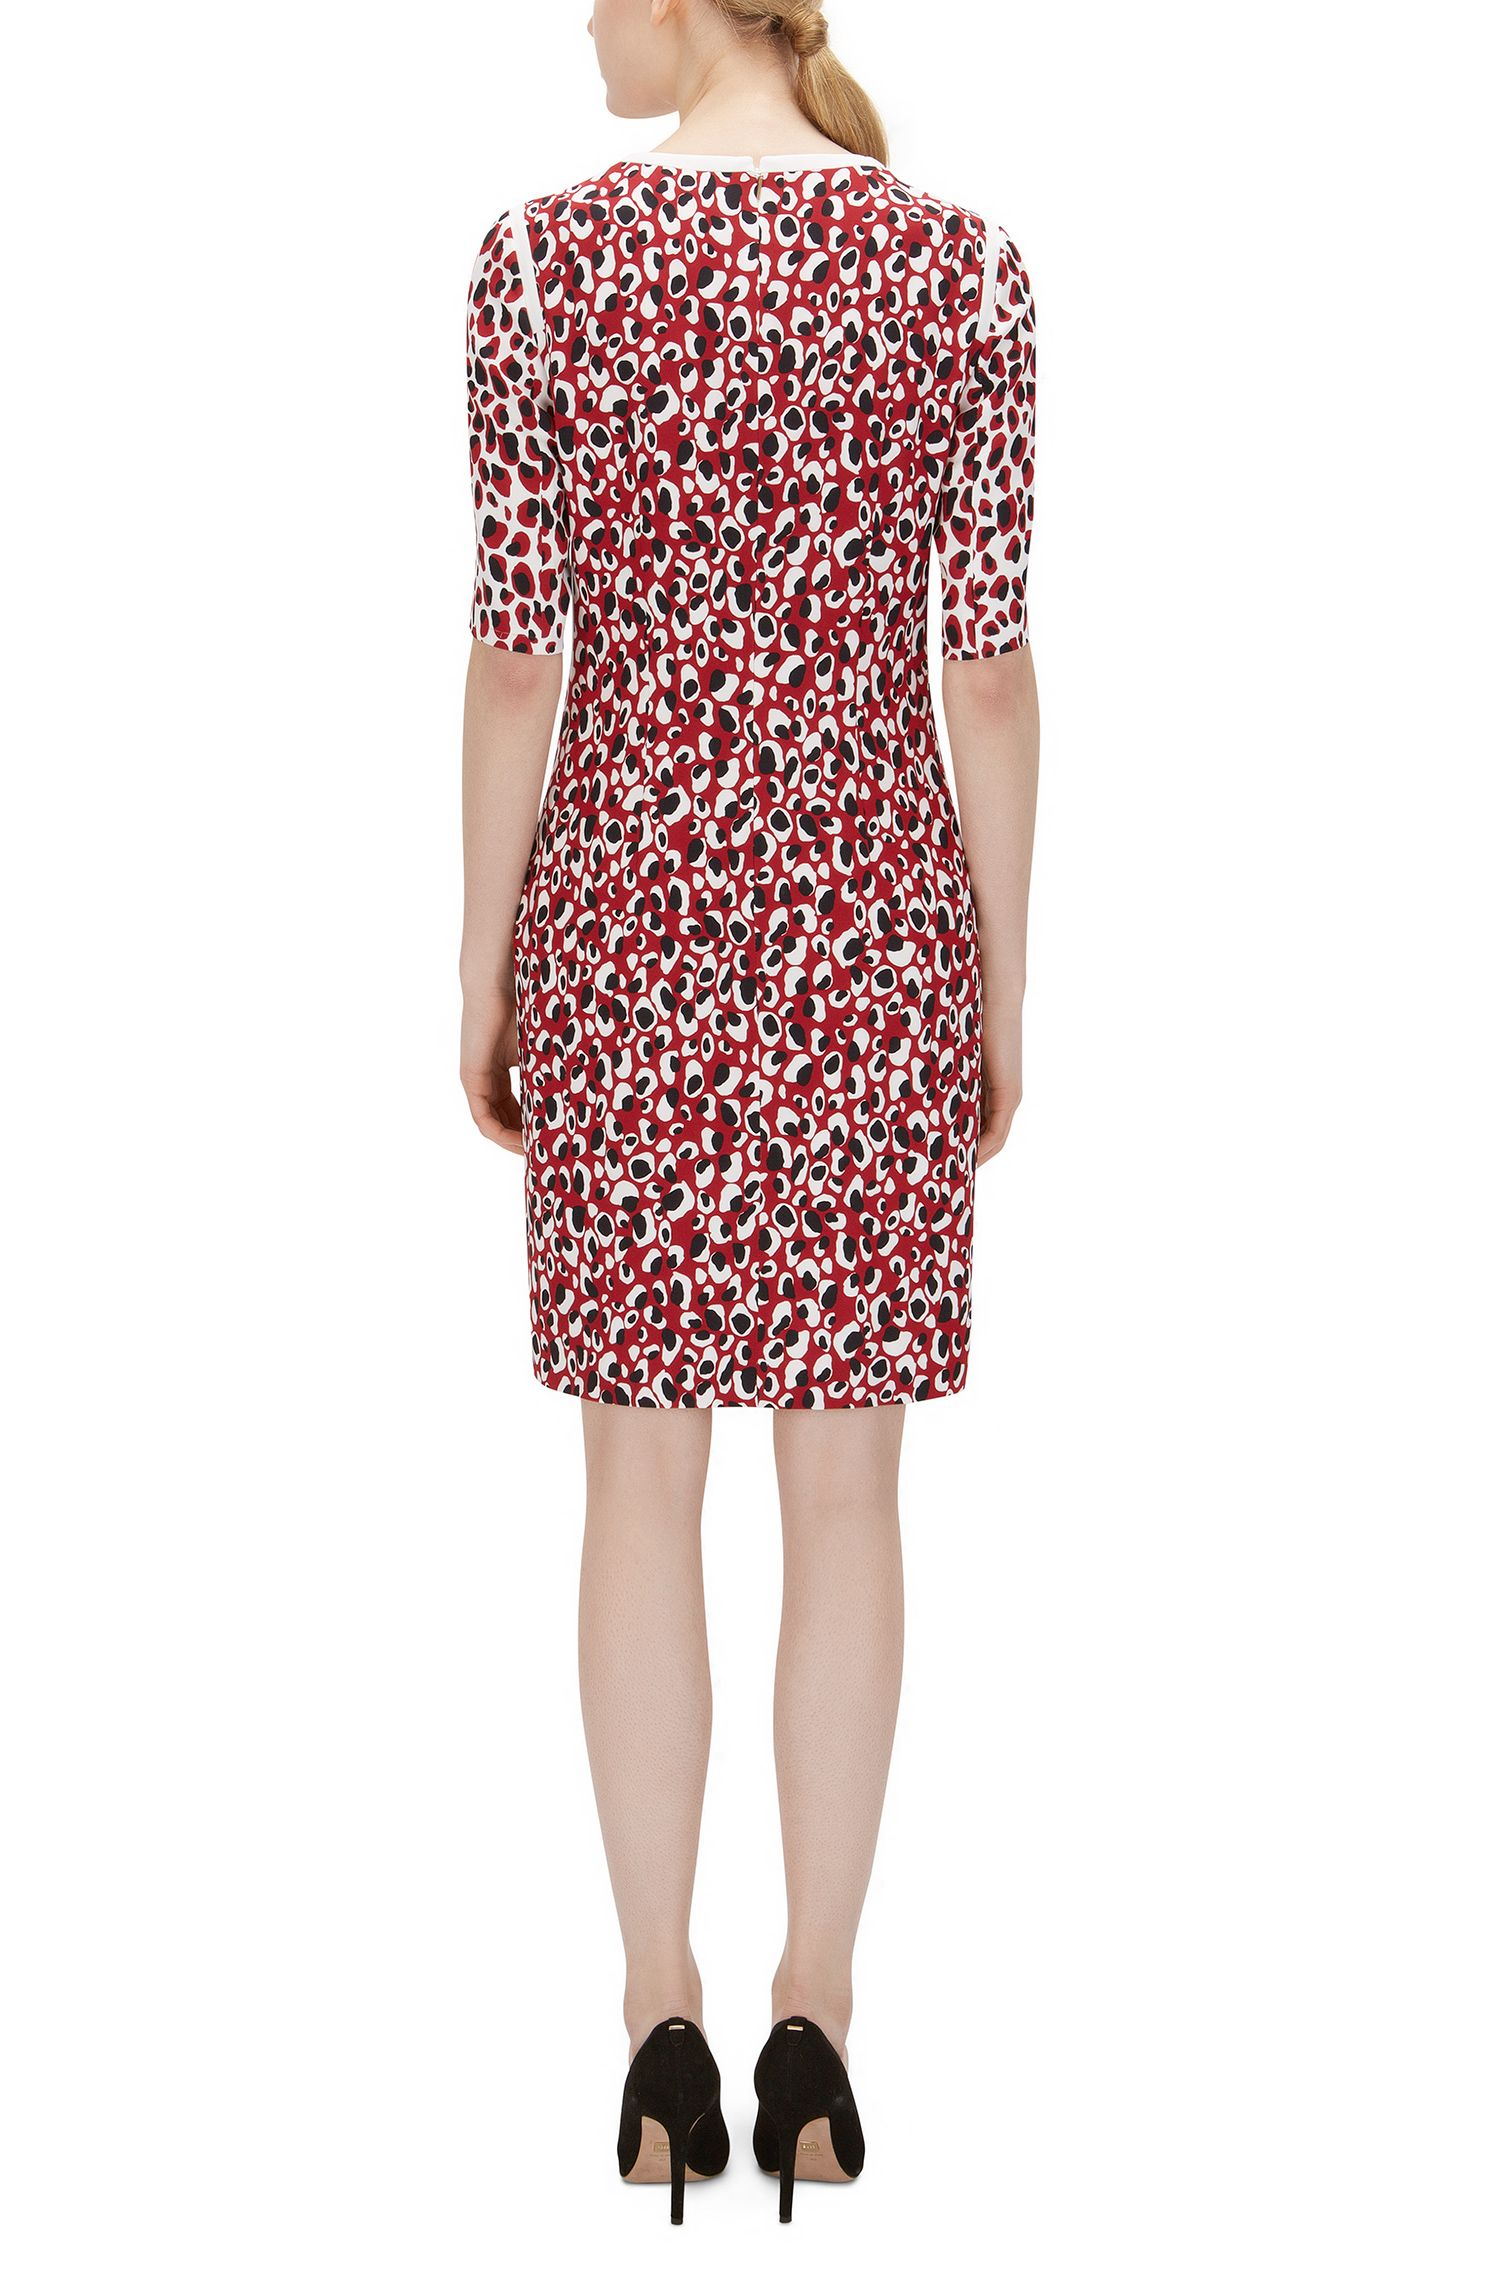 Leopard Print Stretch Dress | Desima, Patterned